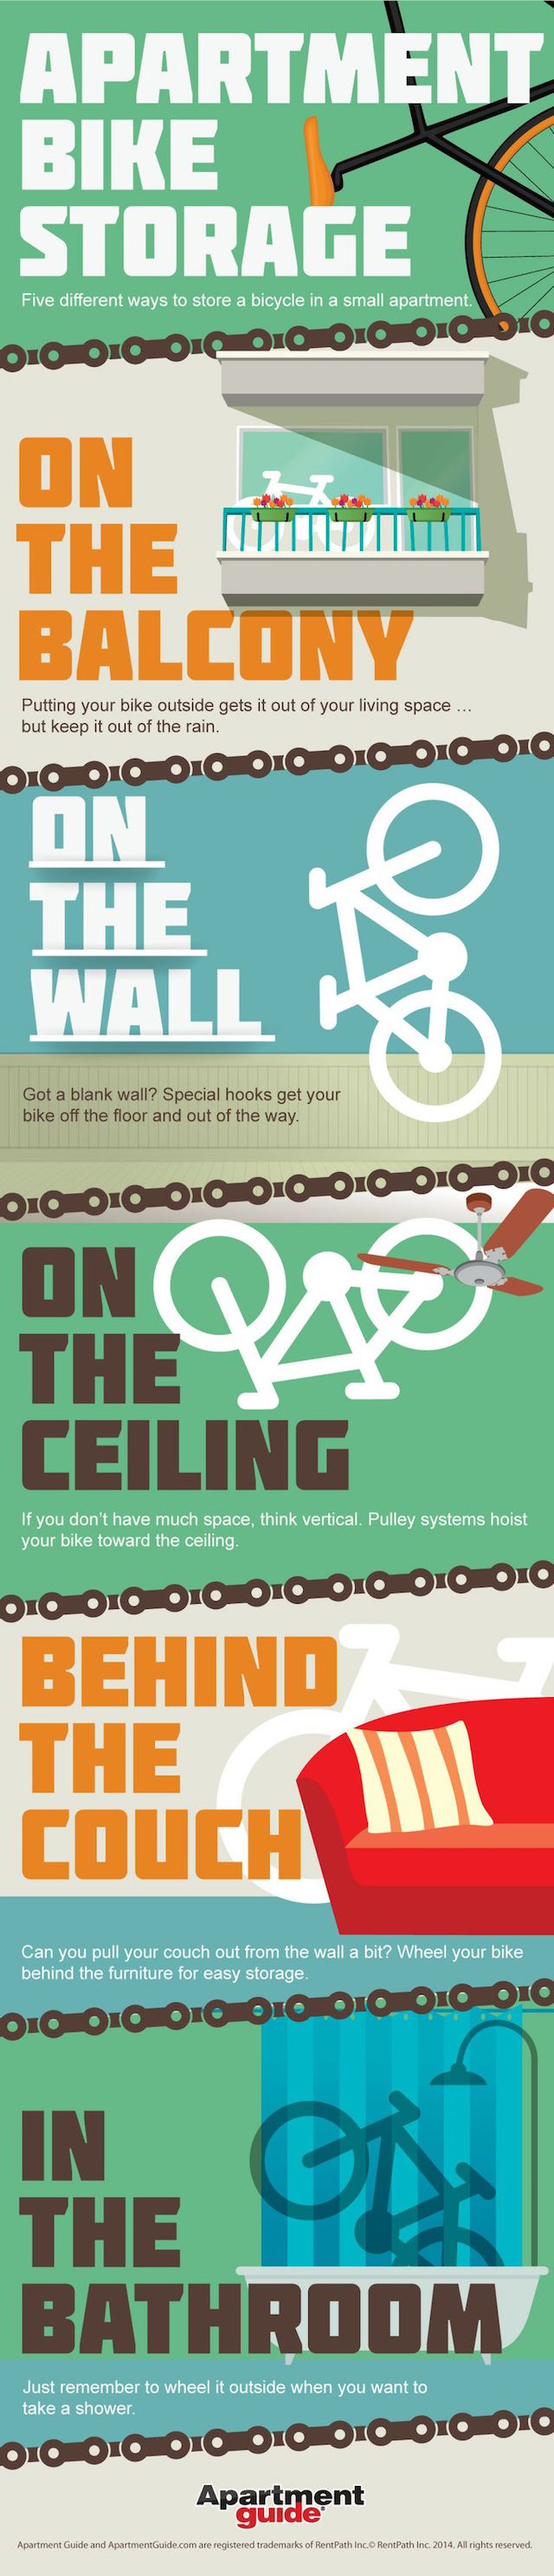 Apartment bike storage infografica for Apartment design guide sepp 65